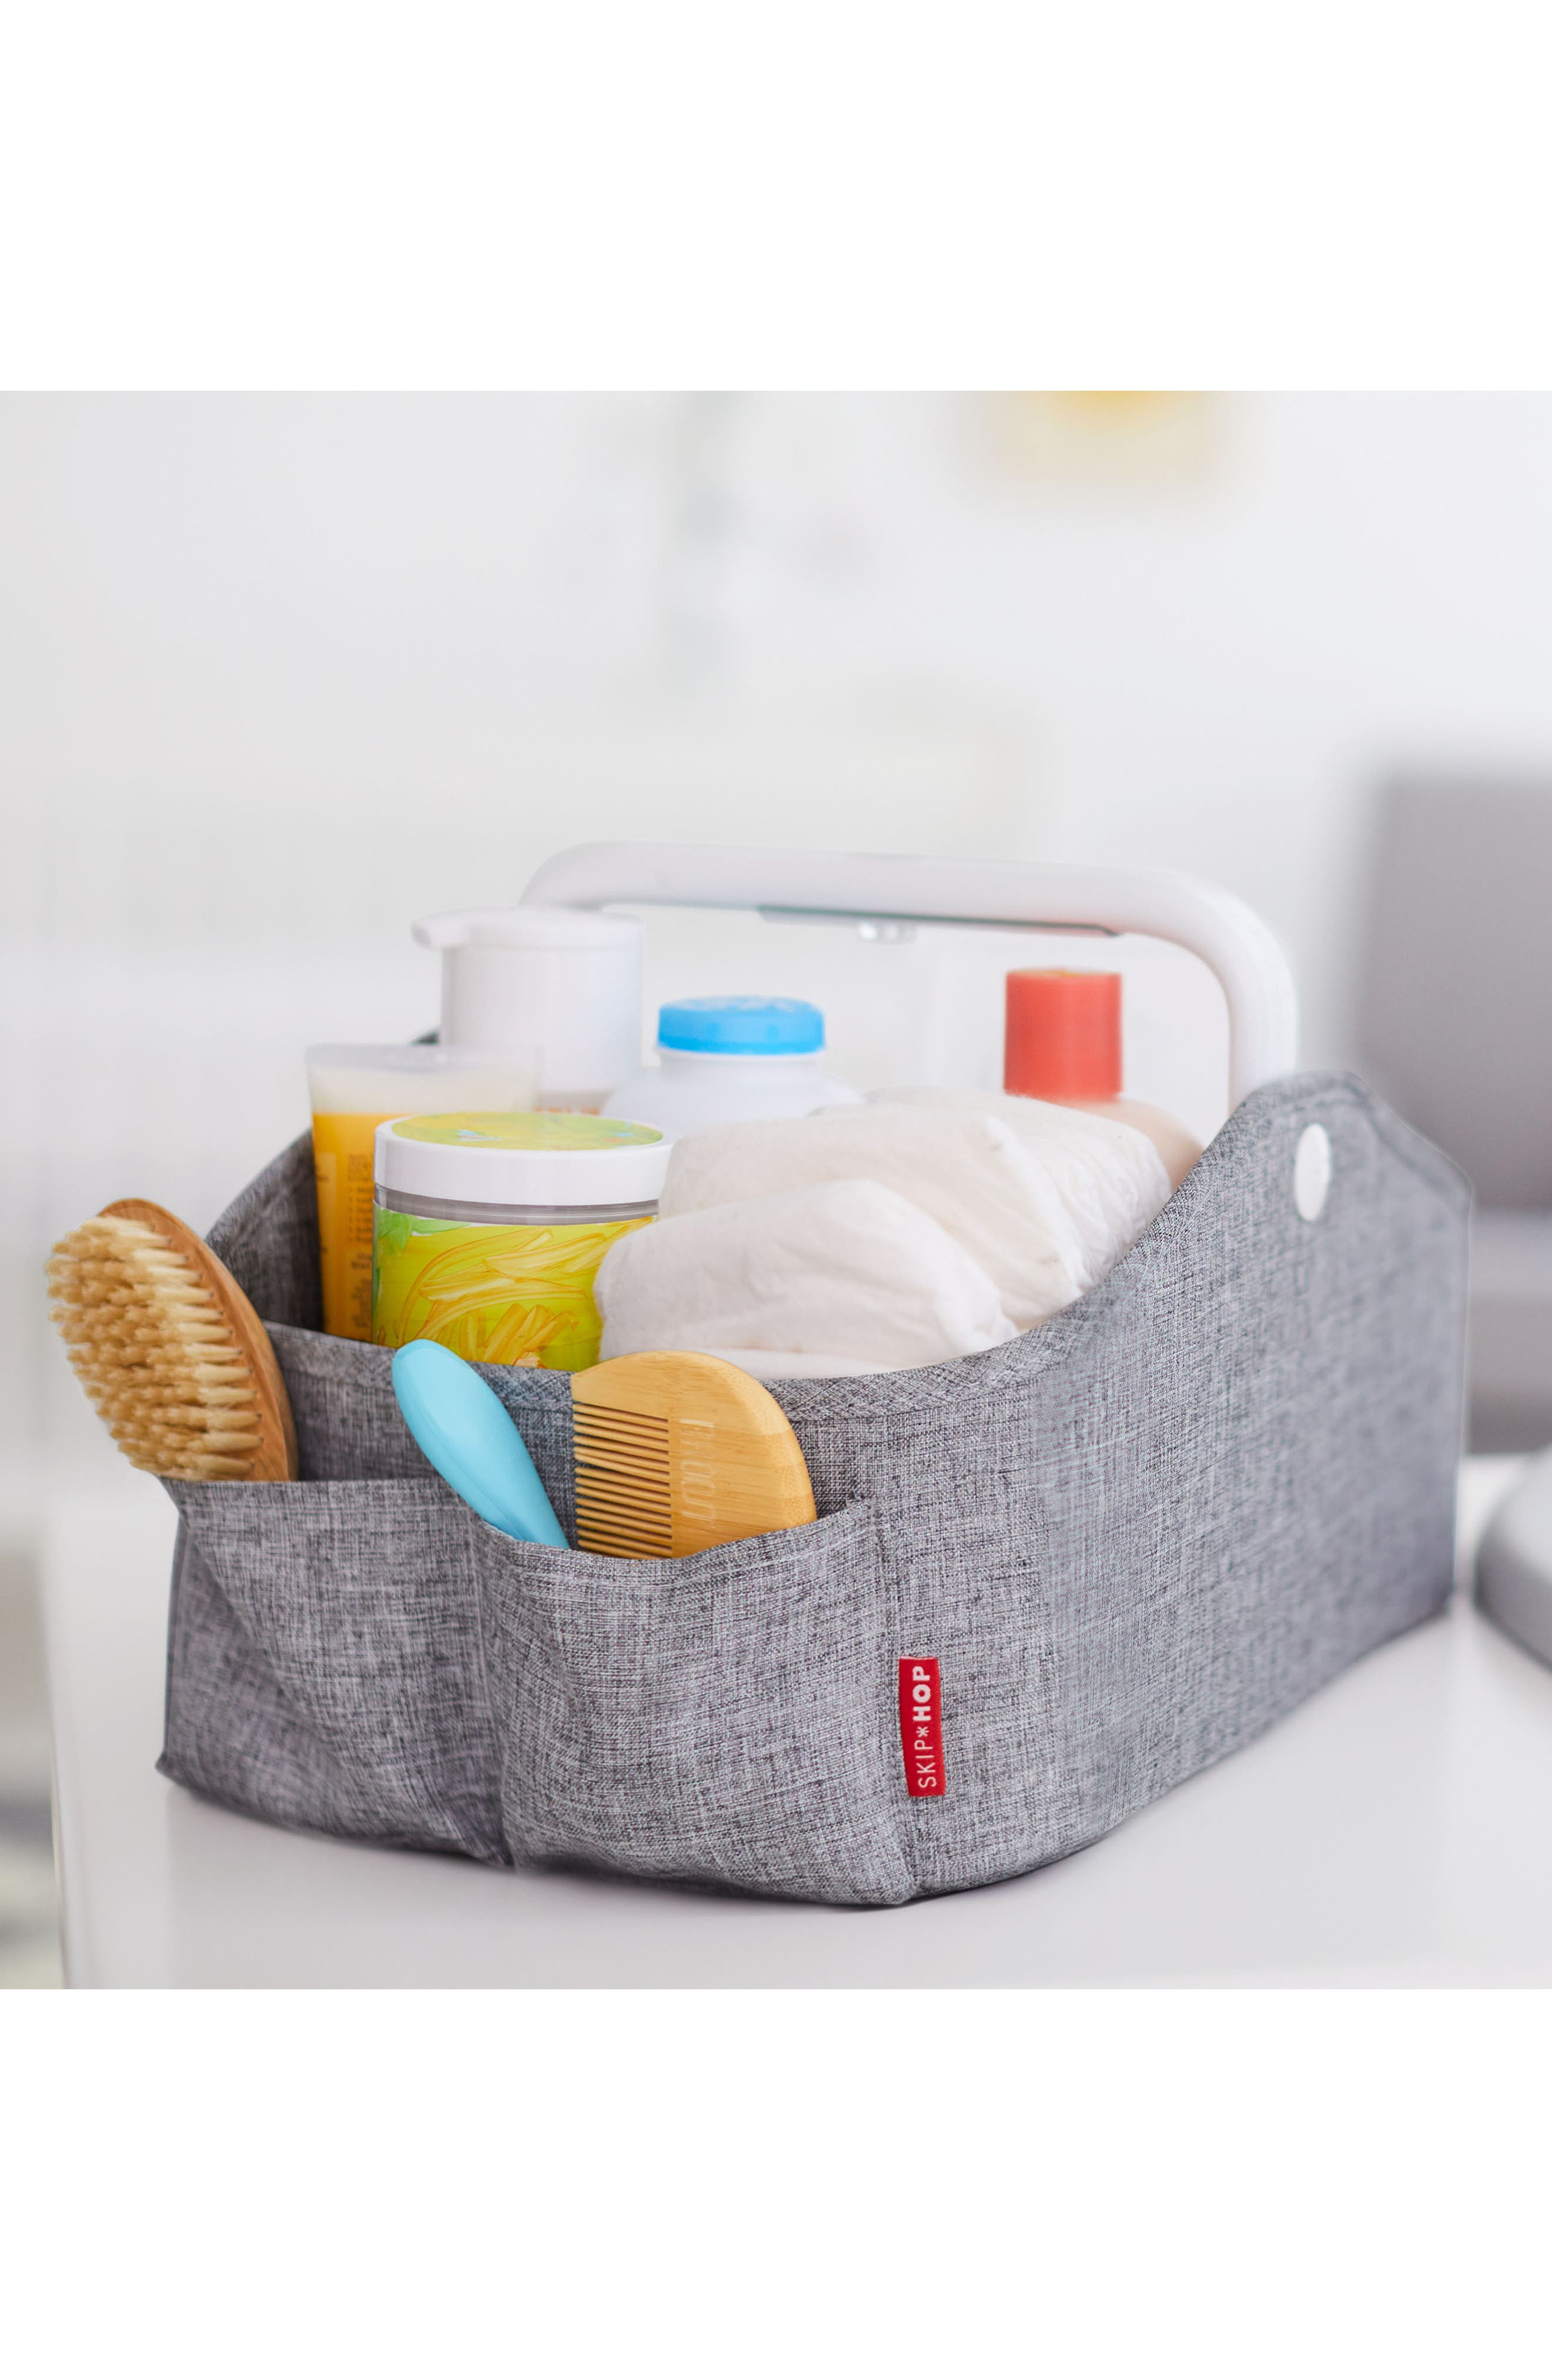 Light Up Diaper Caddy,                             Alternate thumbnail 5, color,                             HEATHER GREY